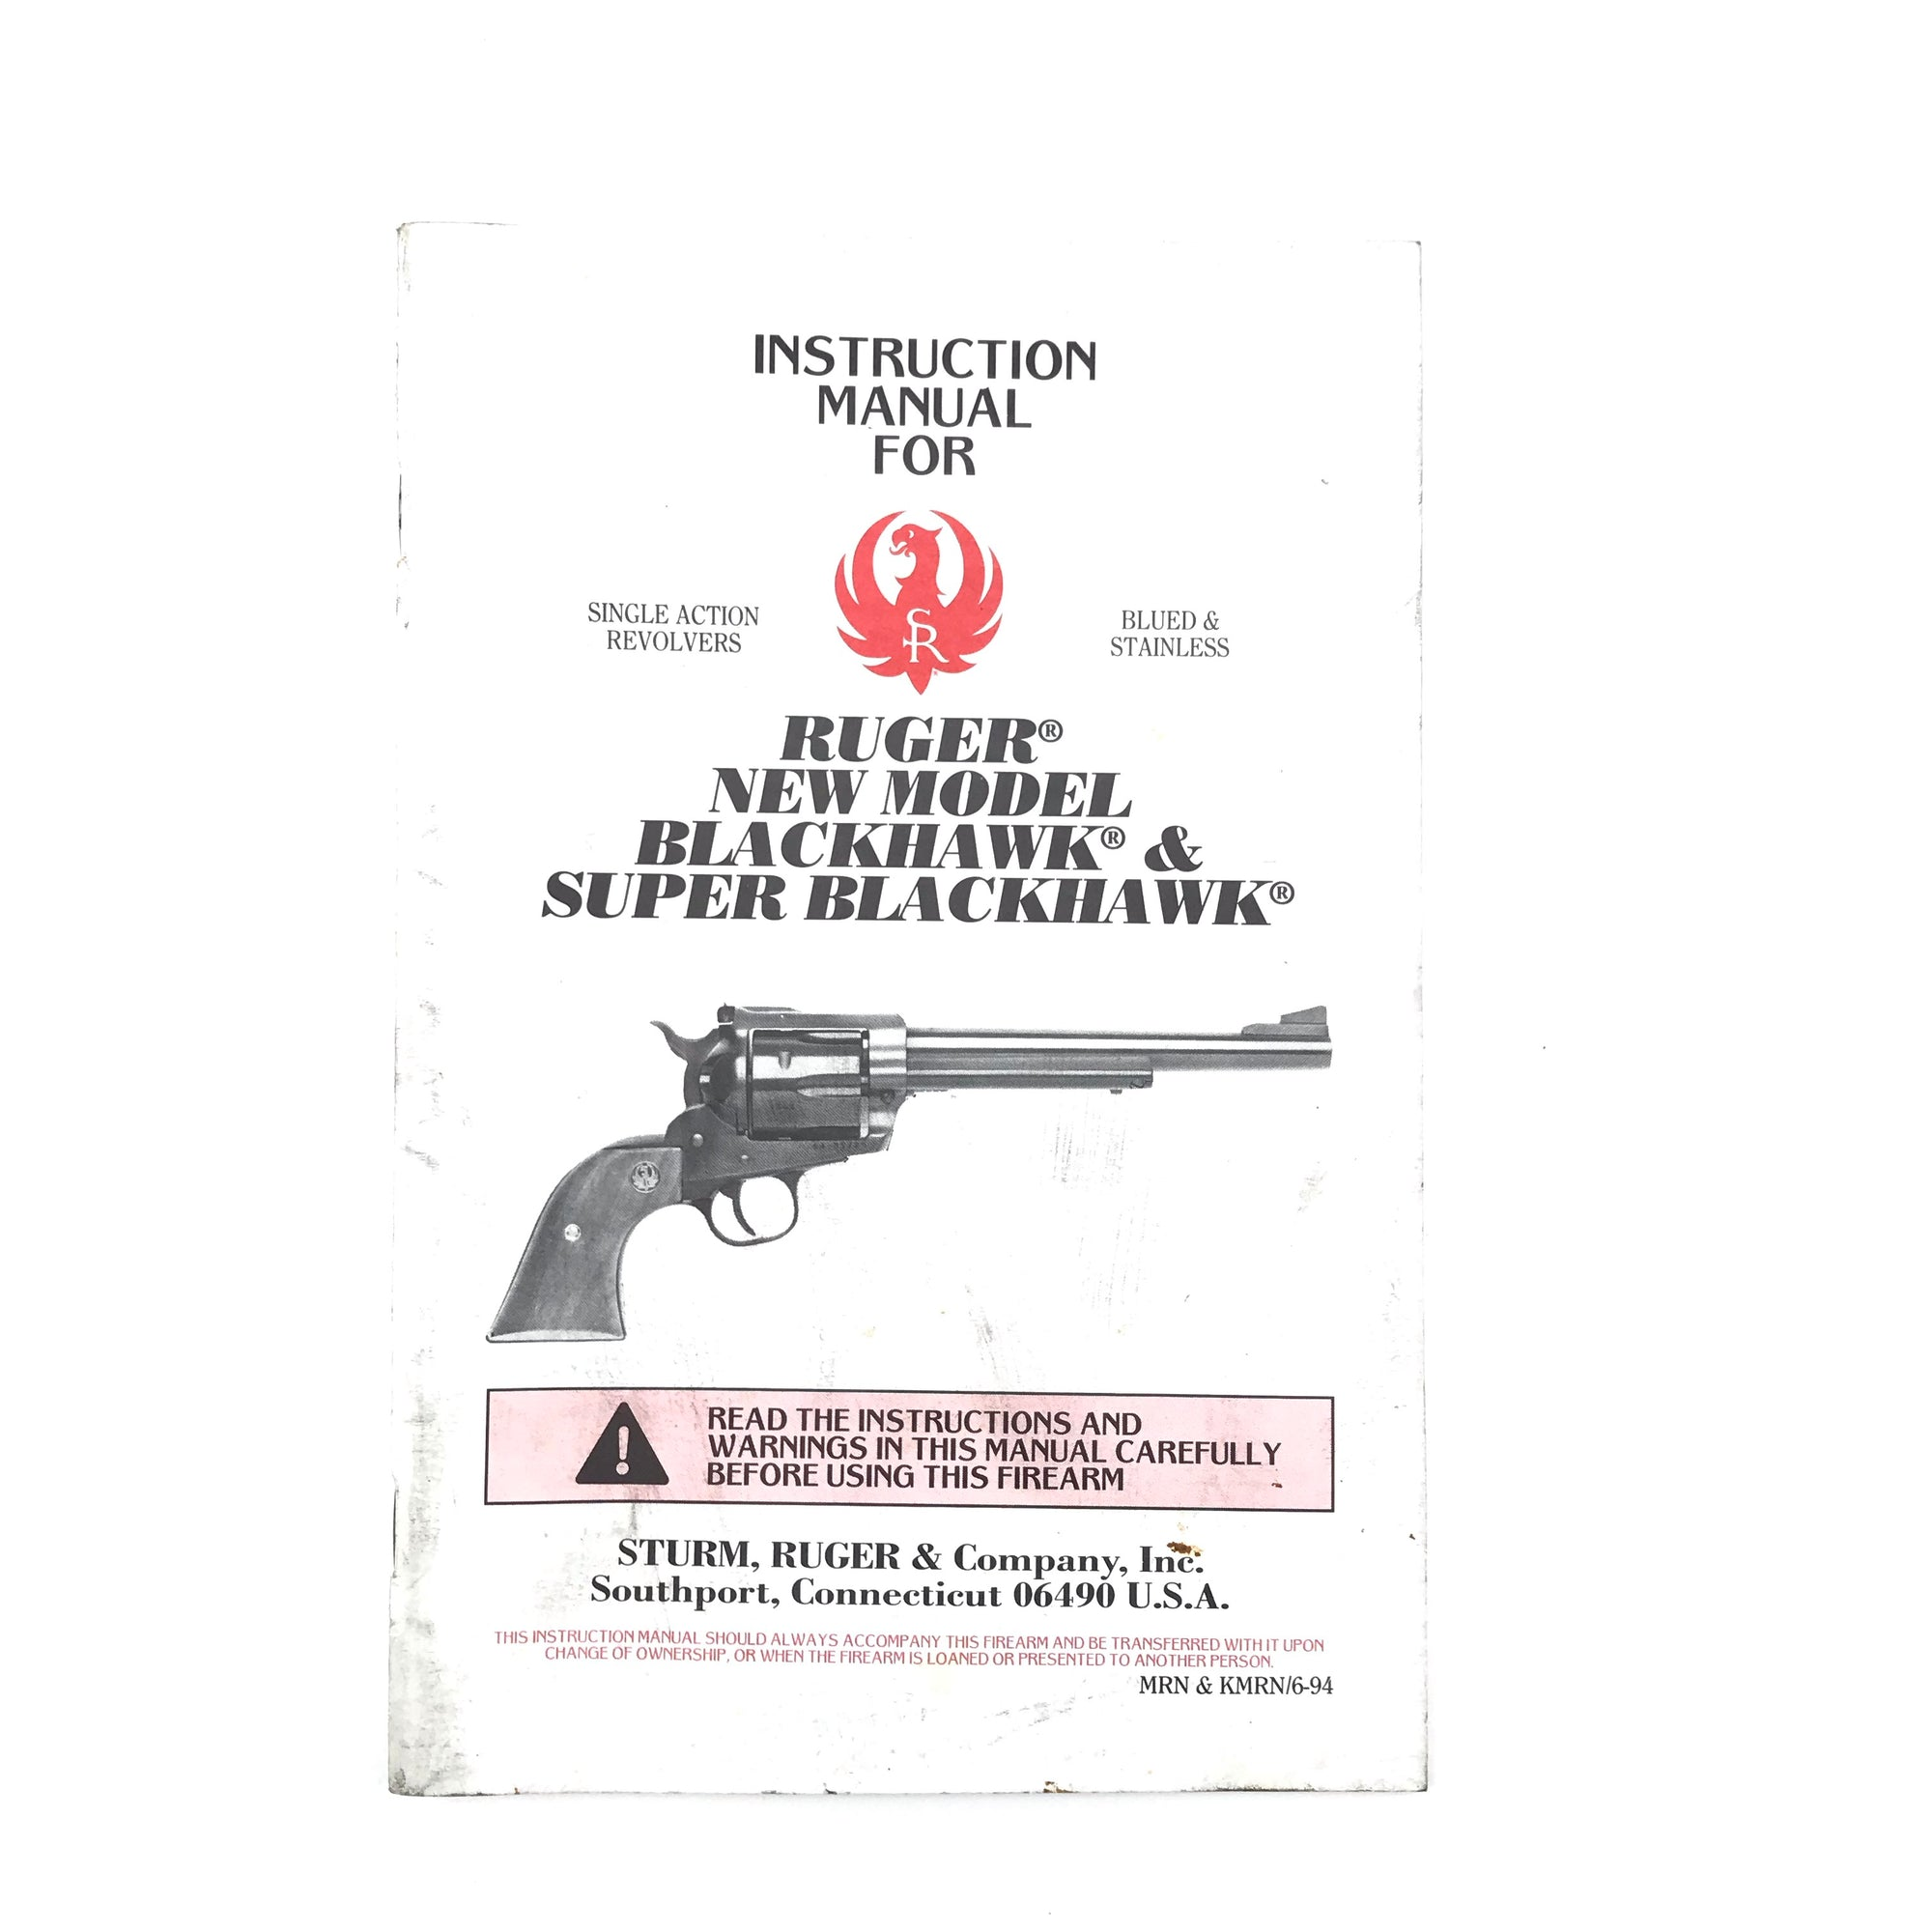 Instruction Manual for Ruger New Model Blackhawk & Super Blackhawk